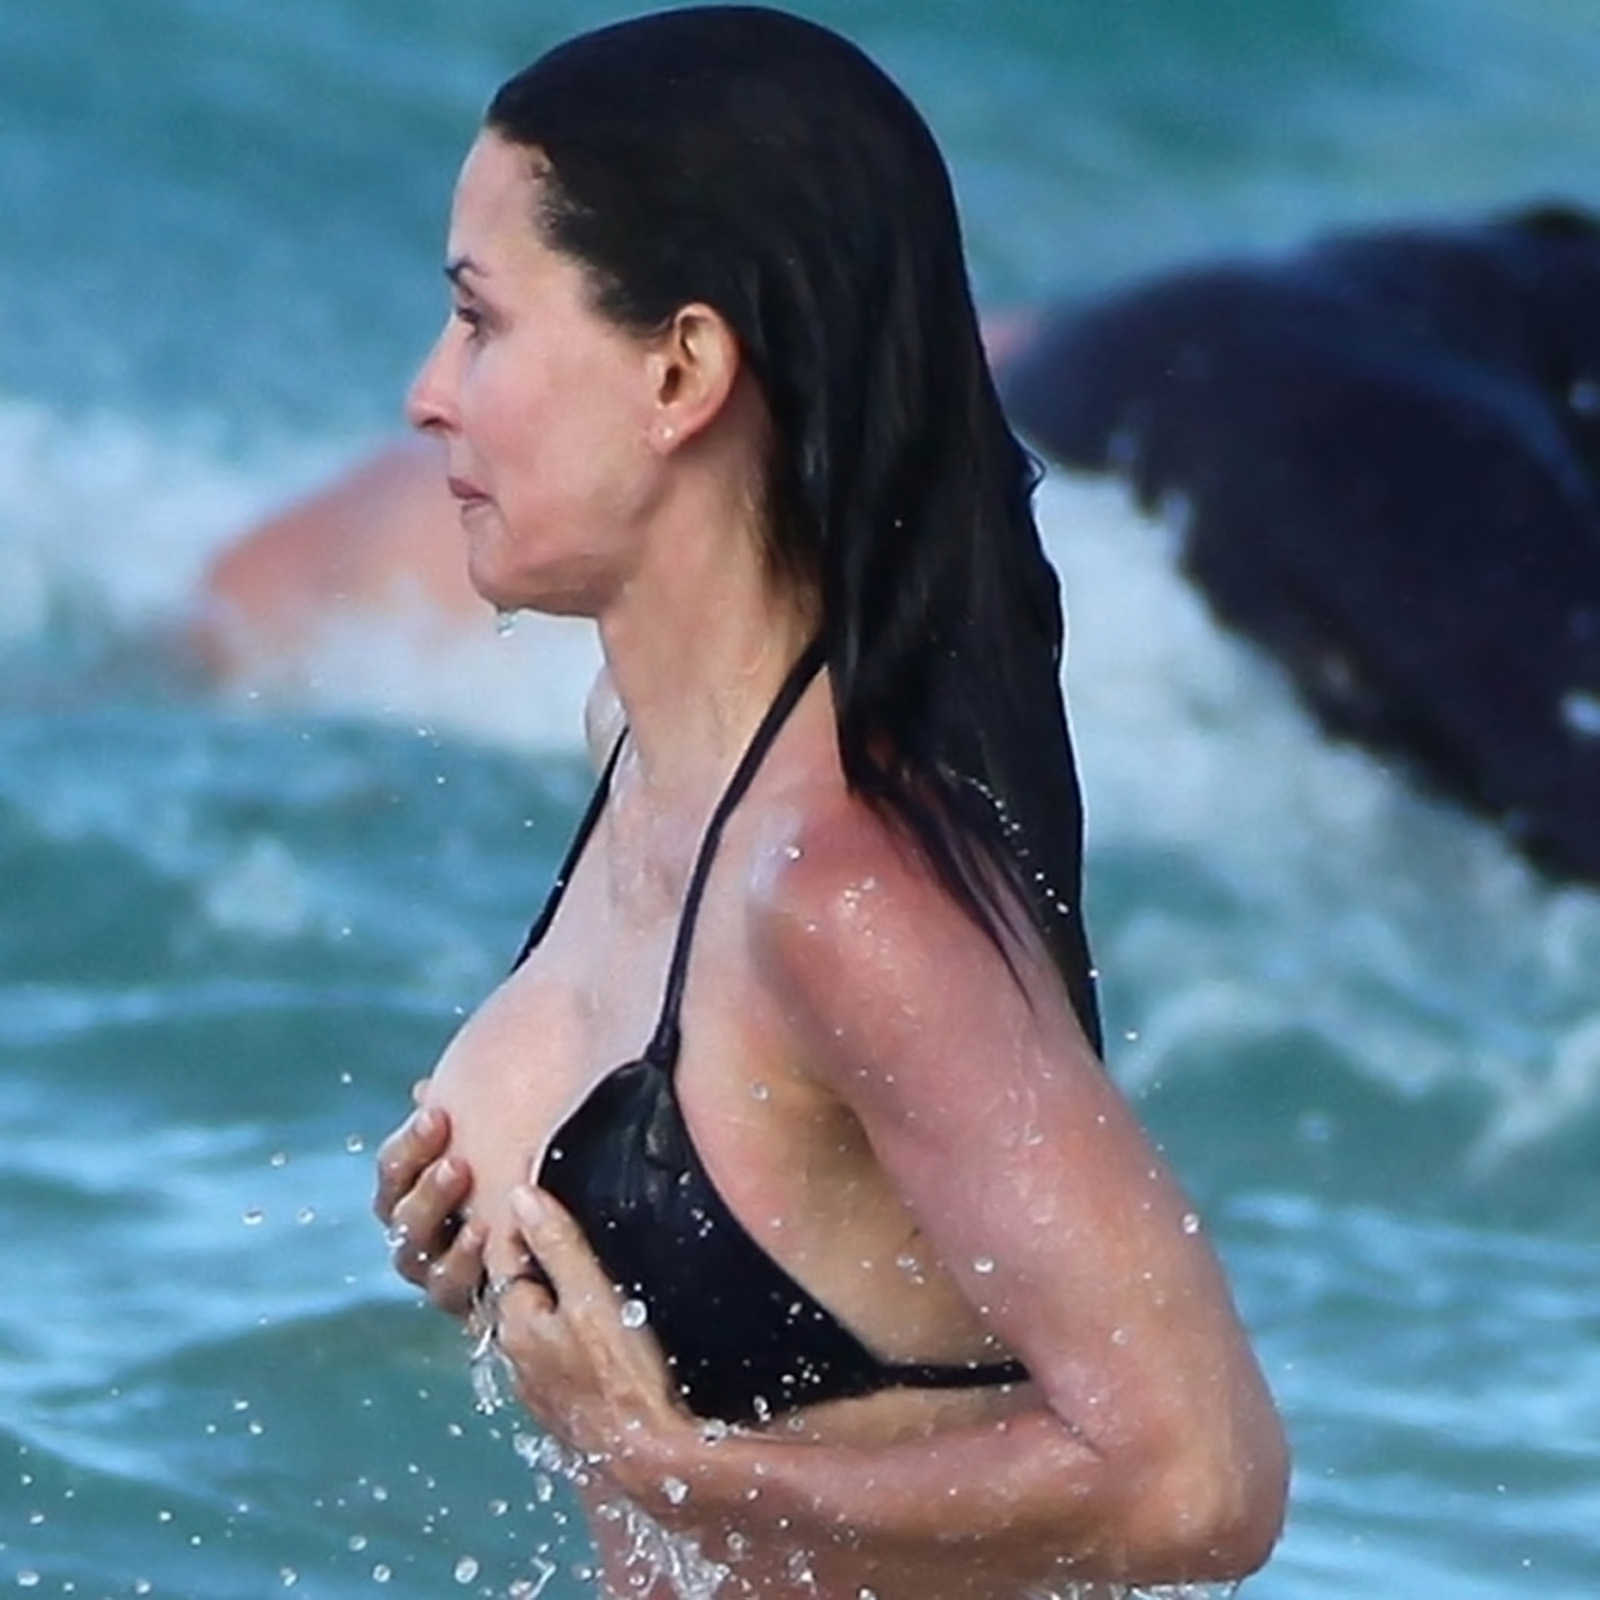 The man's boob courteney cox woman sheer